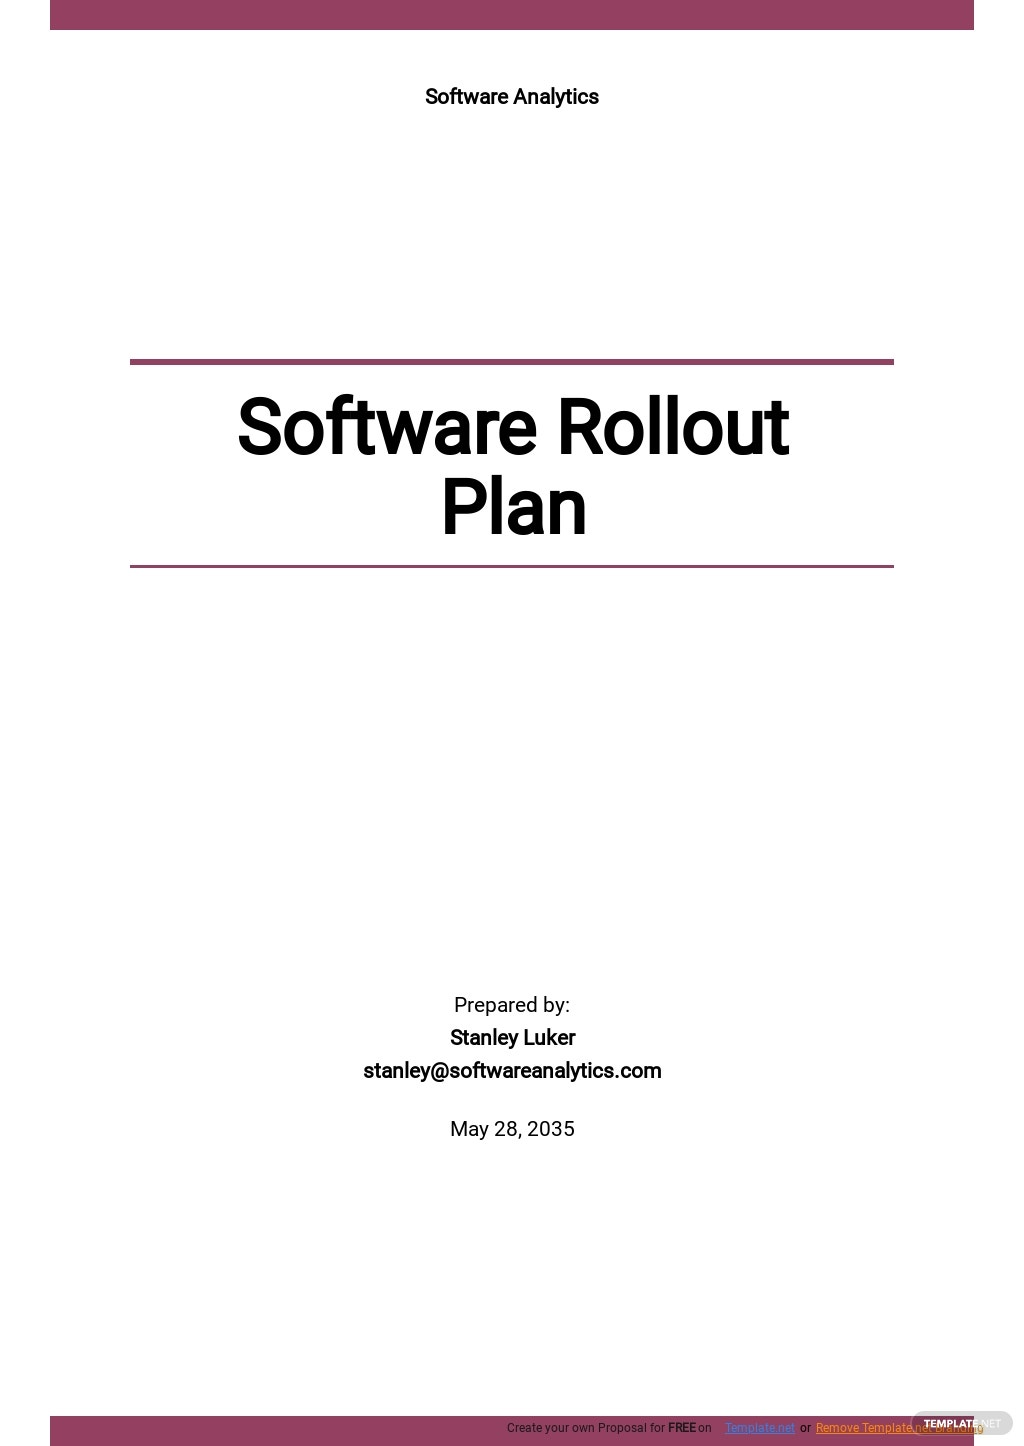 Software Rollout Plan Template.jpe